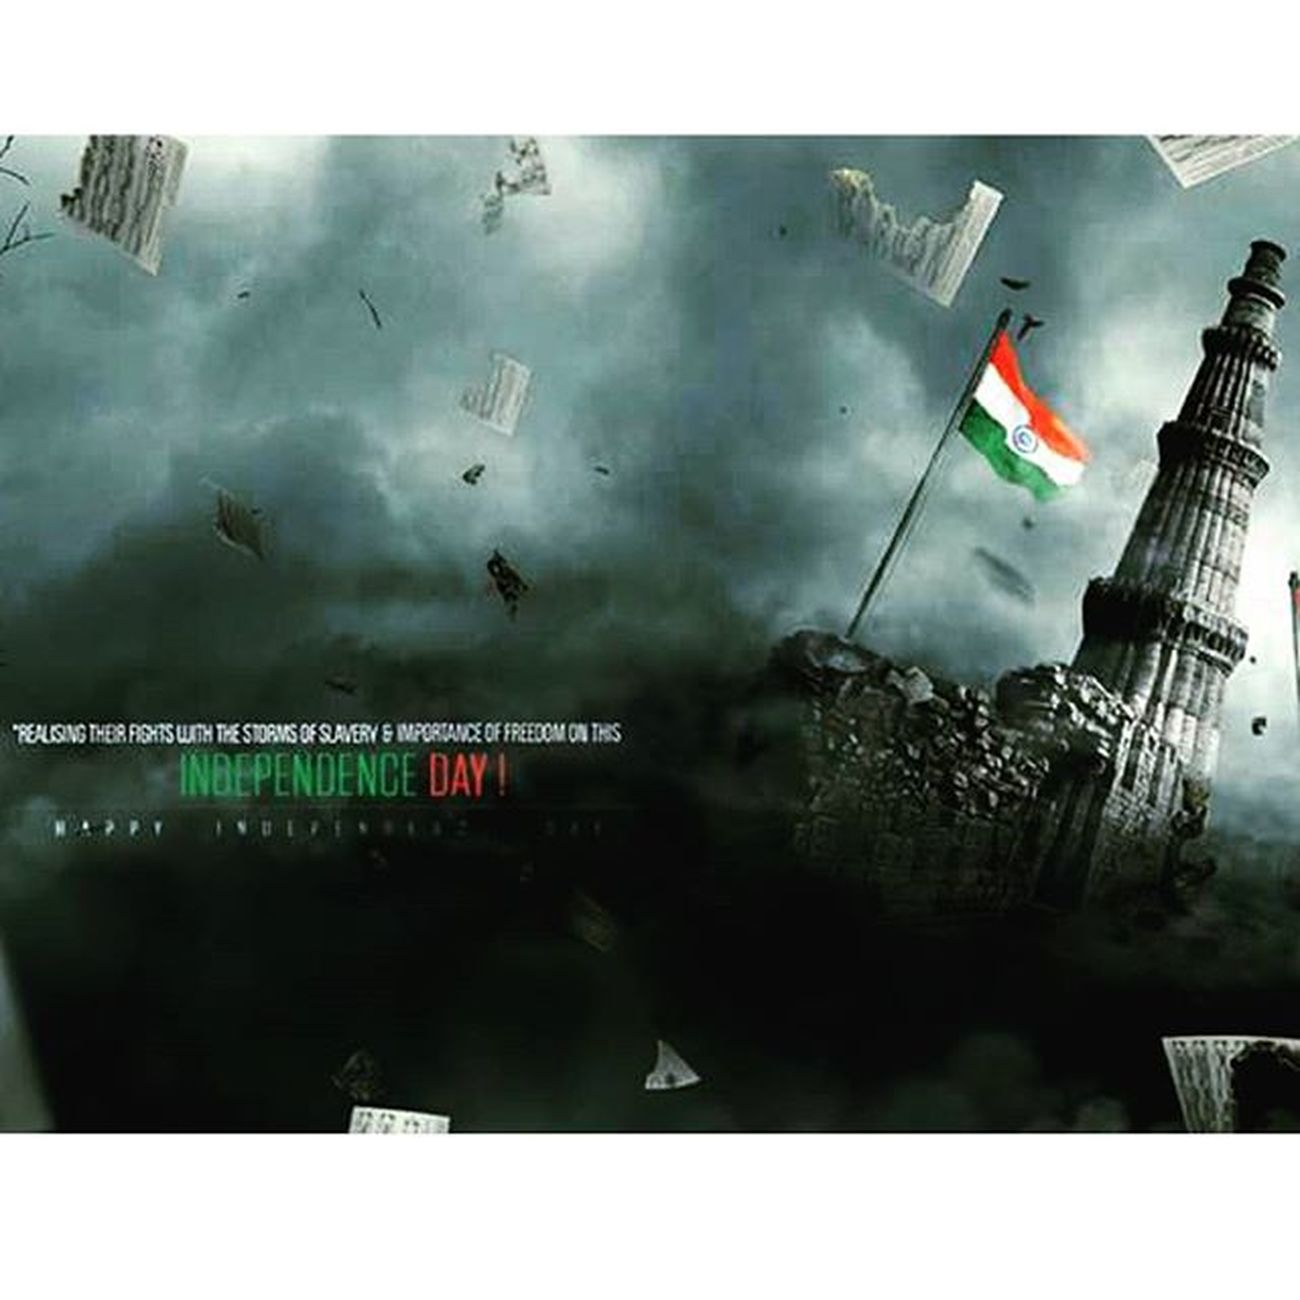 we Just turn 68 .. hail mother India Proudtobeindian Countrylove 68thindependenceday Bharatmatakijai On this day we got our freedom .My motherlands 68th freedom birthday . May be i wasn't born at that time but still i feel the spark . Tagtoournation Proudtobeaindian Lovemycountry Biggestconstitution Ilovemyindia 15thaugust Motherlands68thbirthday Mylovemycountry